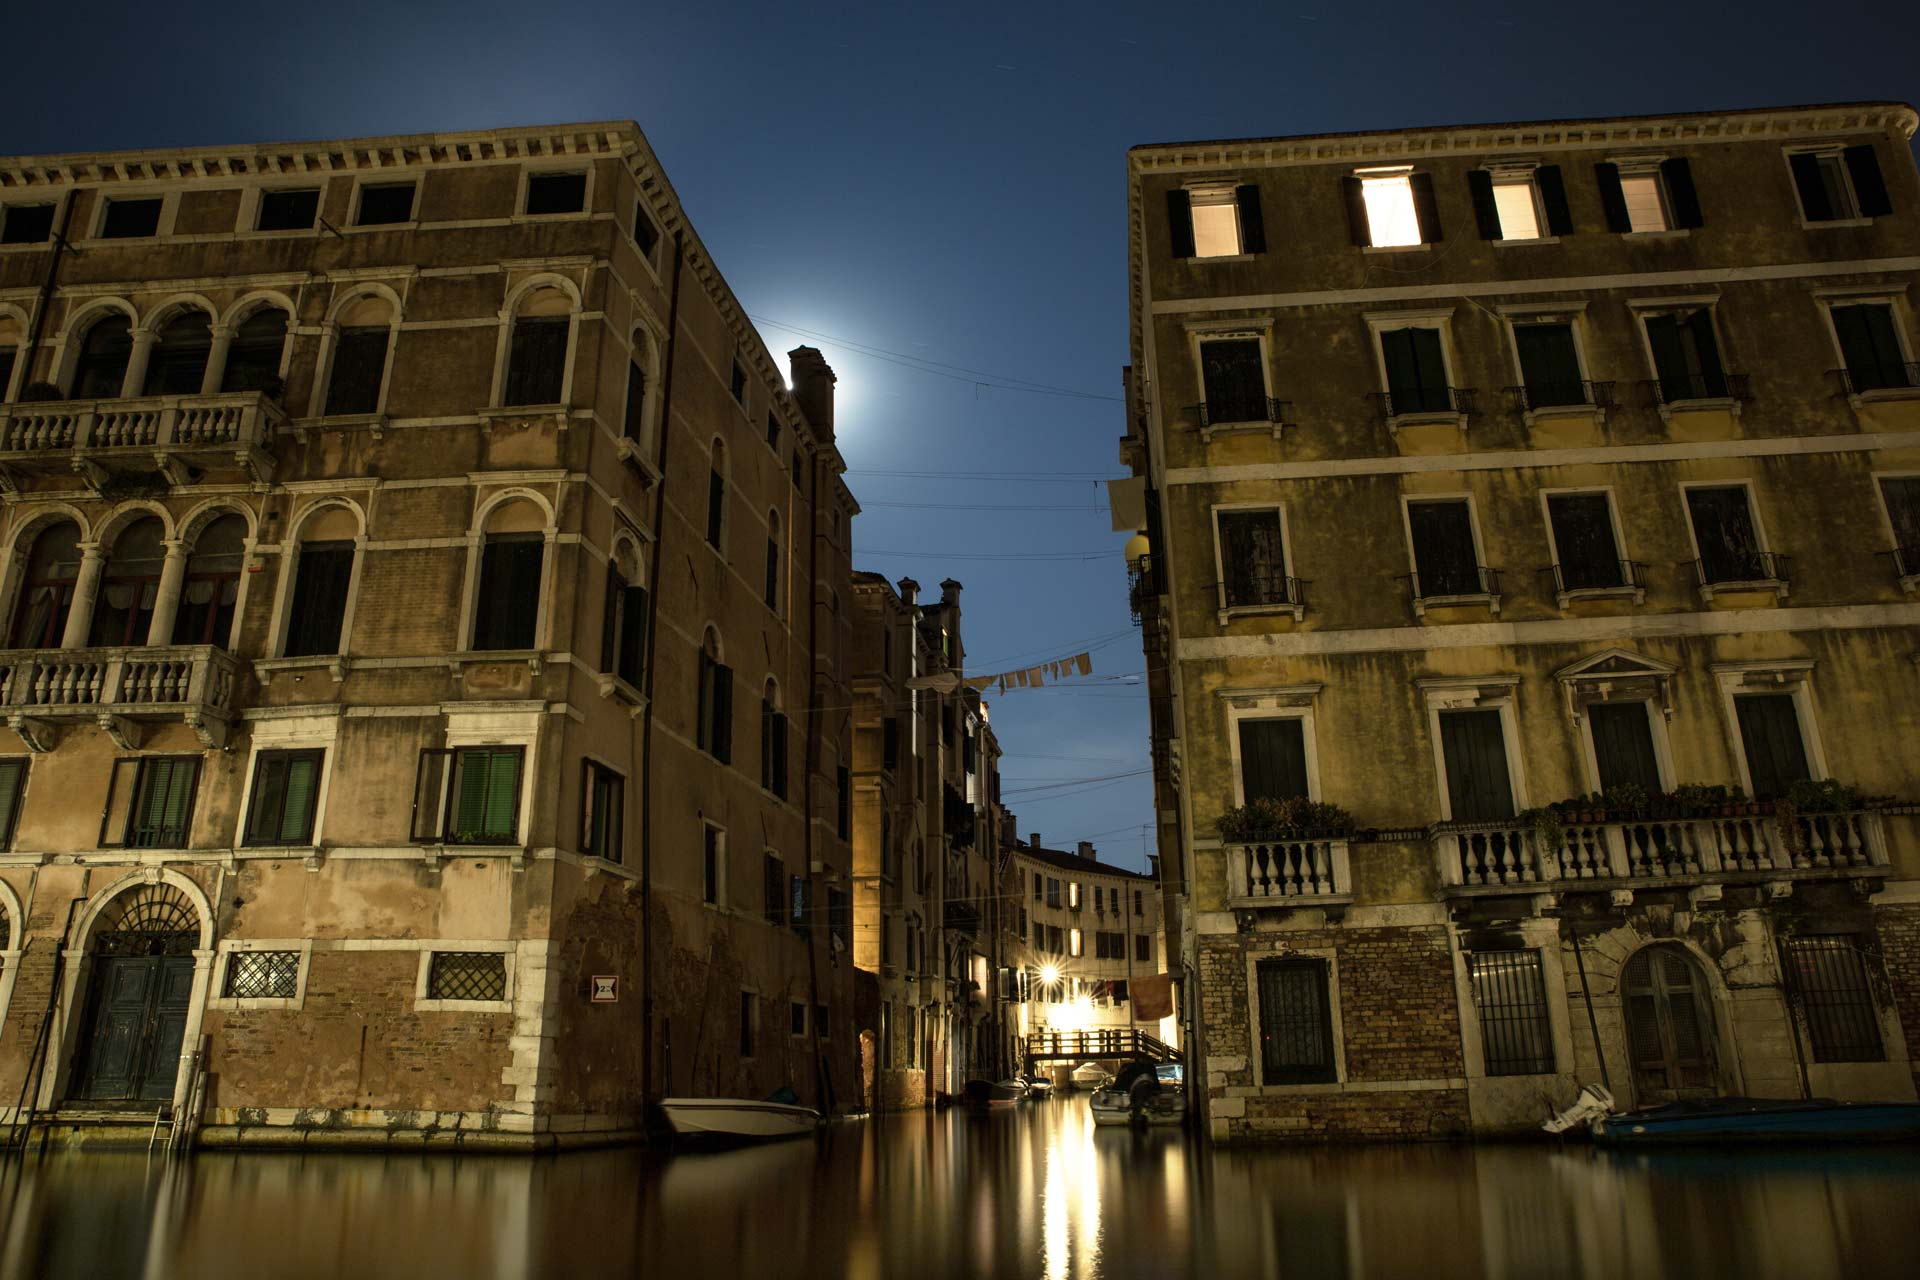 Jewish-Ghetto-Cannaregio-Venezia-My-Other-Venice